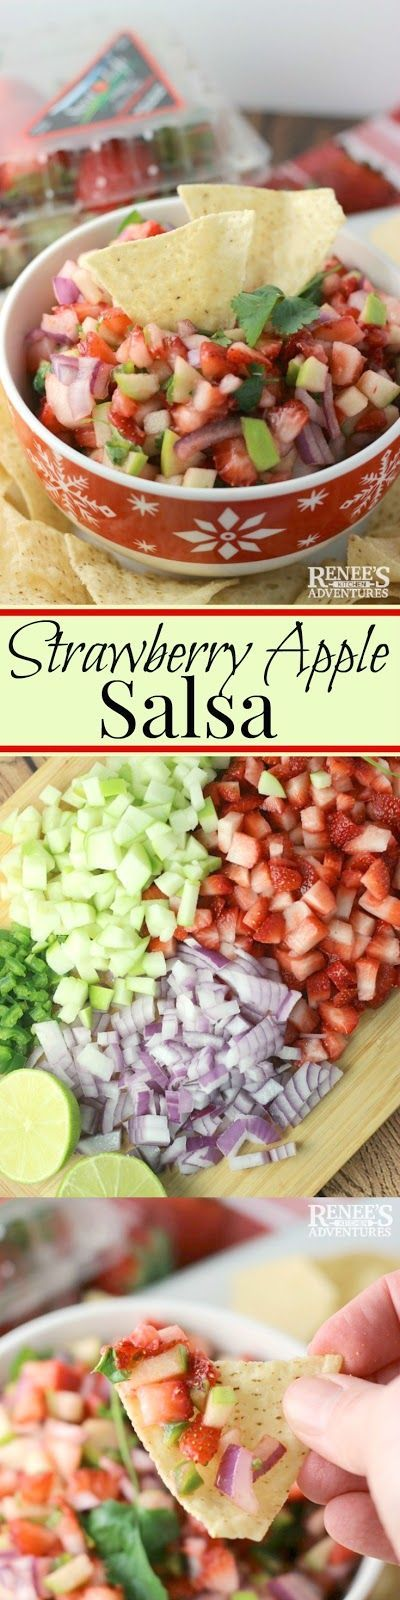 Strawberry Apple Salsa | Renee's Kitchen Adventures - easy recipe for strawberry apple salsa appetizer. Spicy, jalapeno, strawberry, apple @Flastrawberries #SundaySupper #FLstrawberry